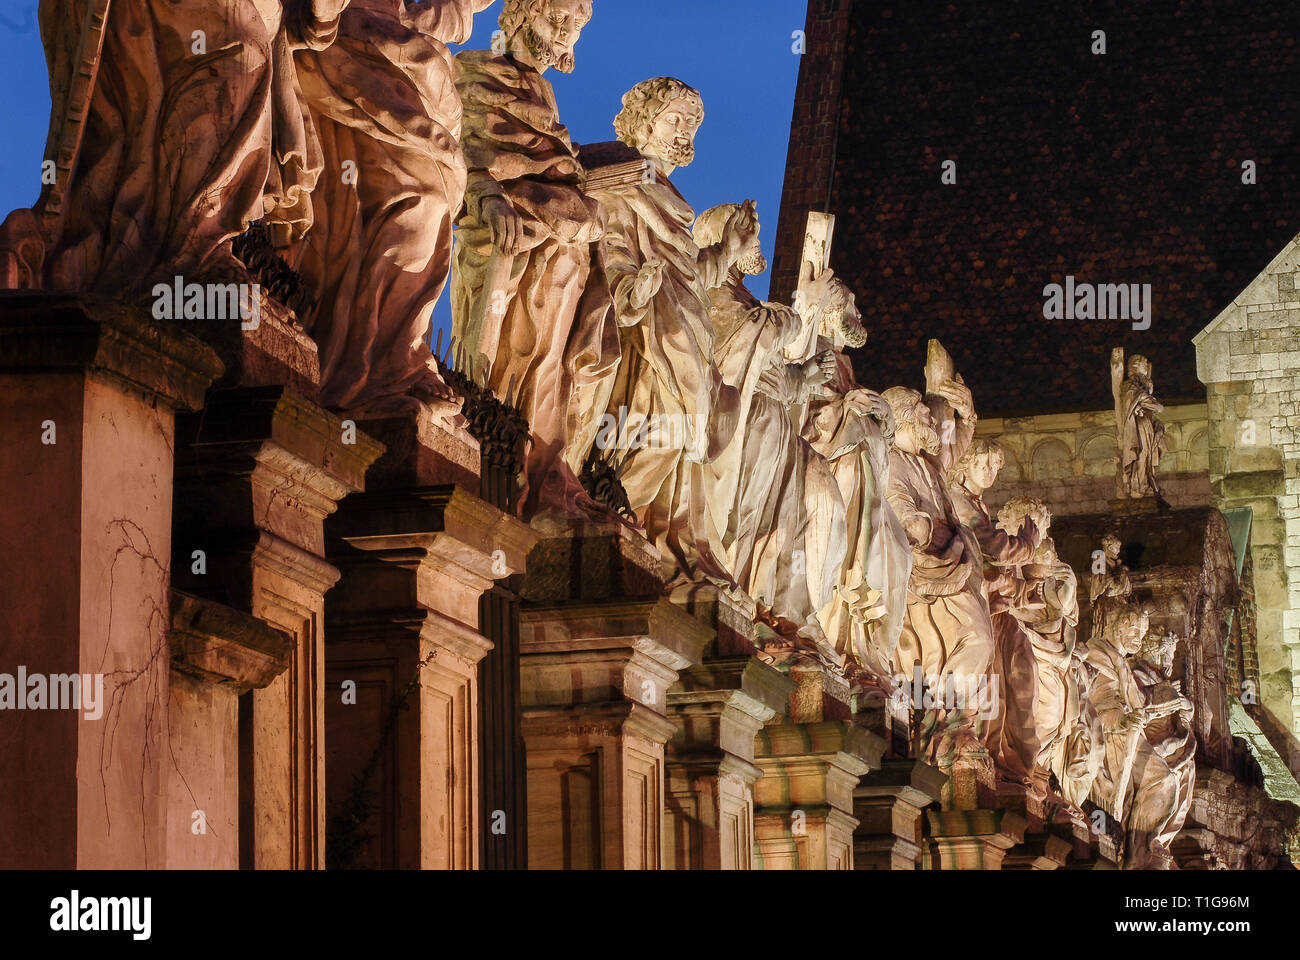 Baroque 12 Apostles statues in front of kosciol Sw Piotra i Sw Pawla (Saints Peter and Paul Church) built 1597 to 1619 by Giovanni Maria Bernardoni in - Stock Image